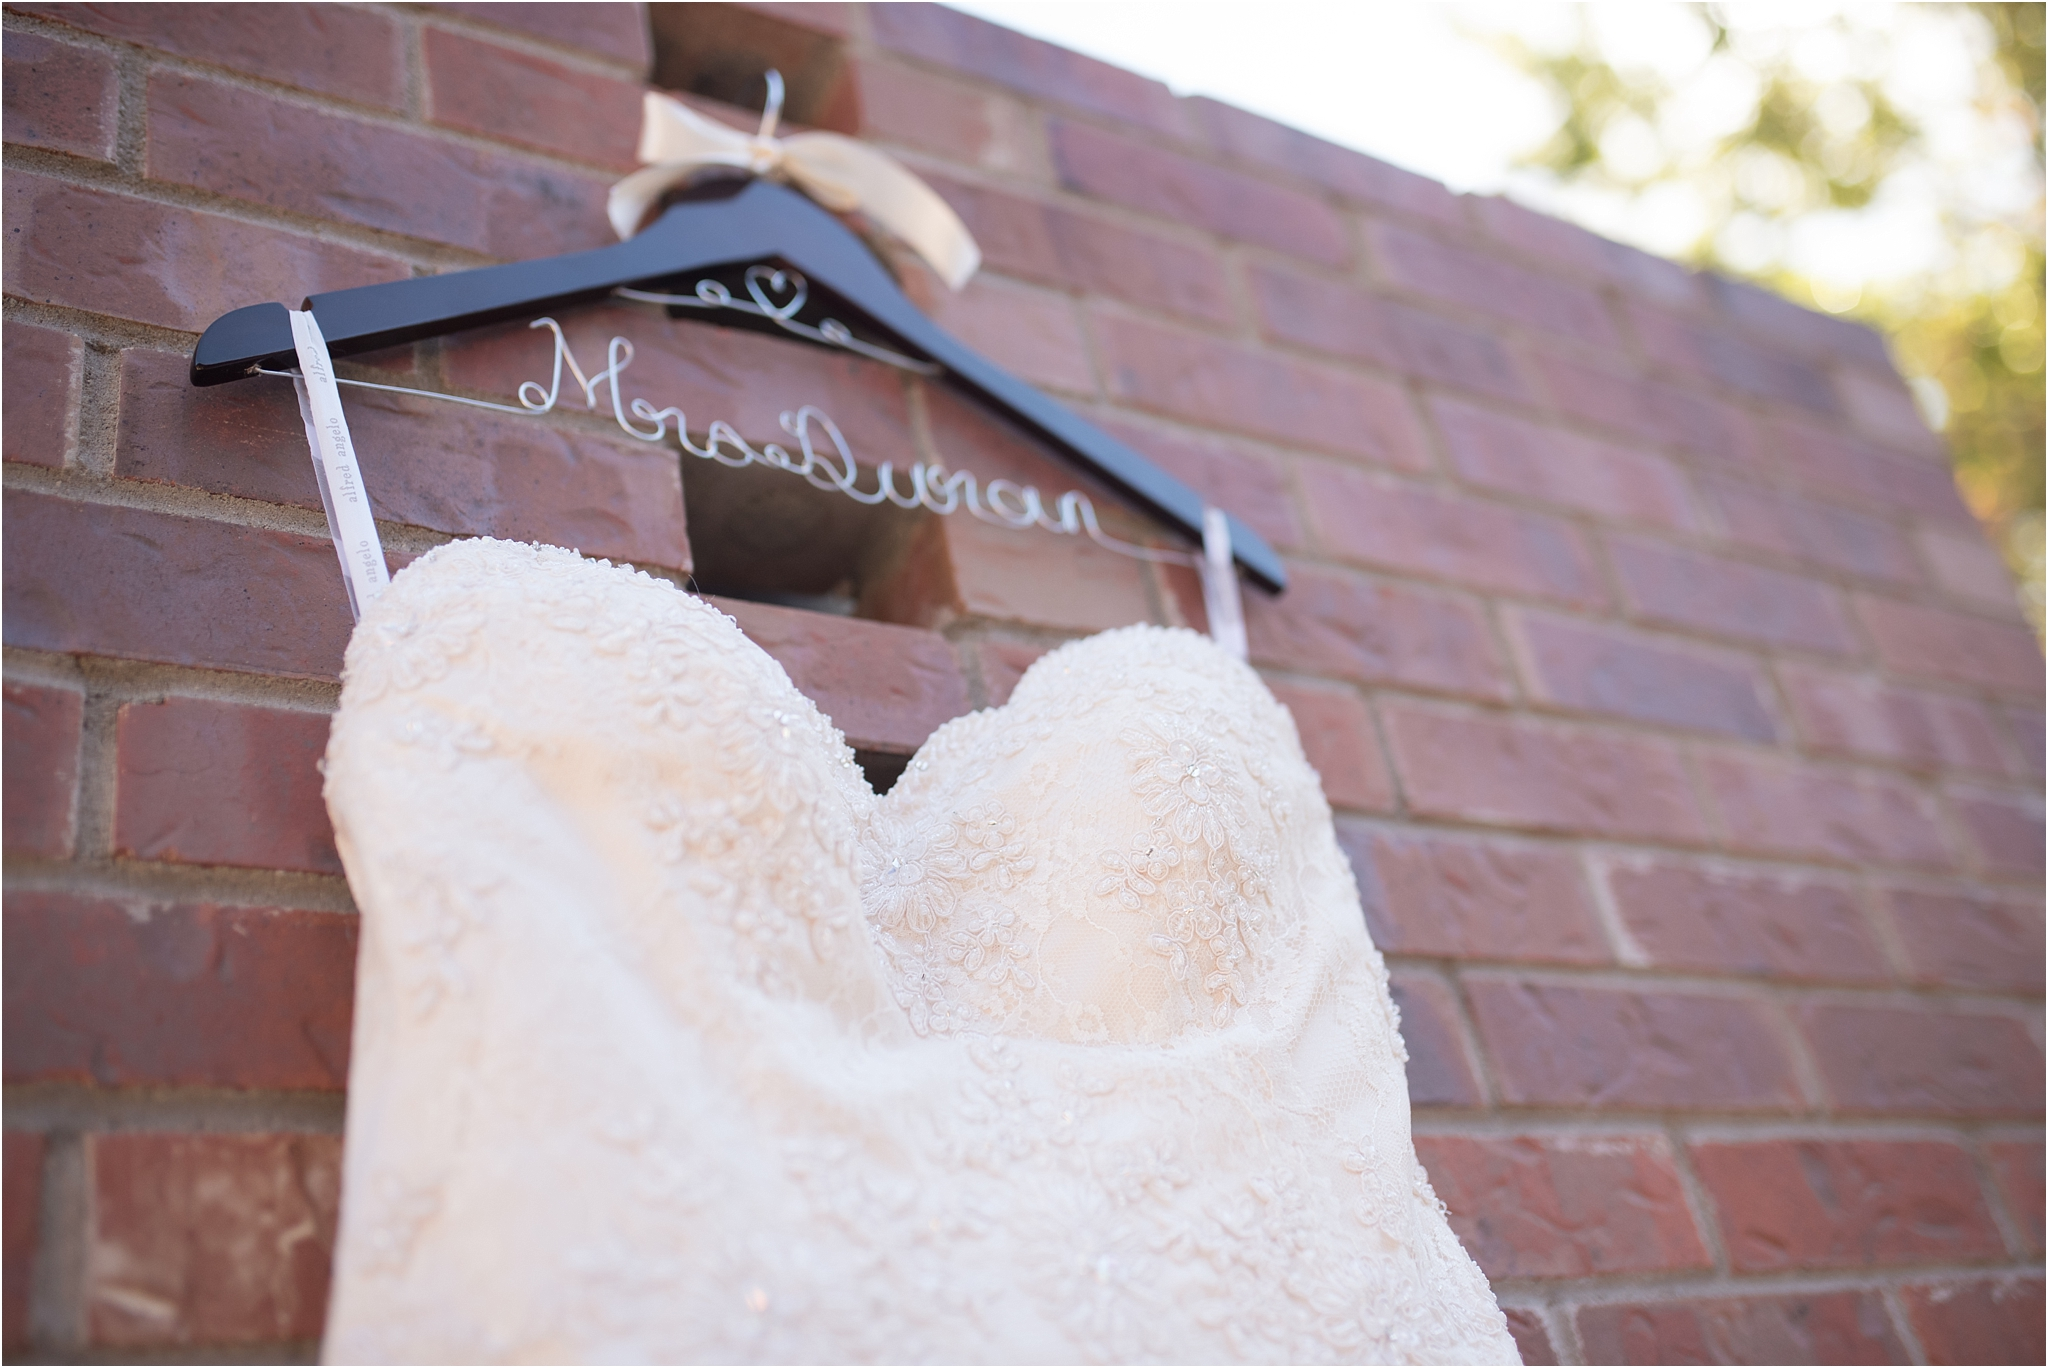 kayla kitts photography - albuquerque wedding photographer - hairpins and scissors - a cake odyssey - new mexico wedding photographer_0002.jpg